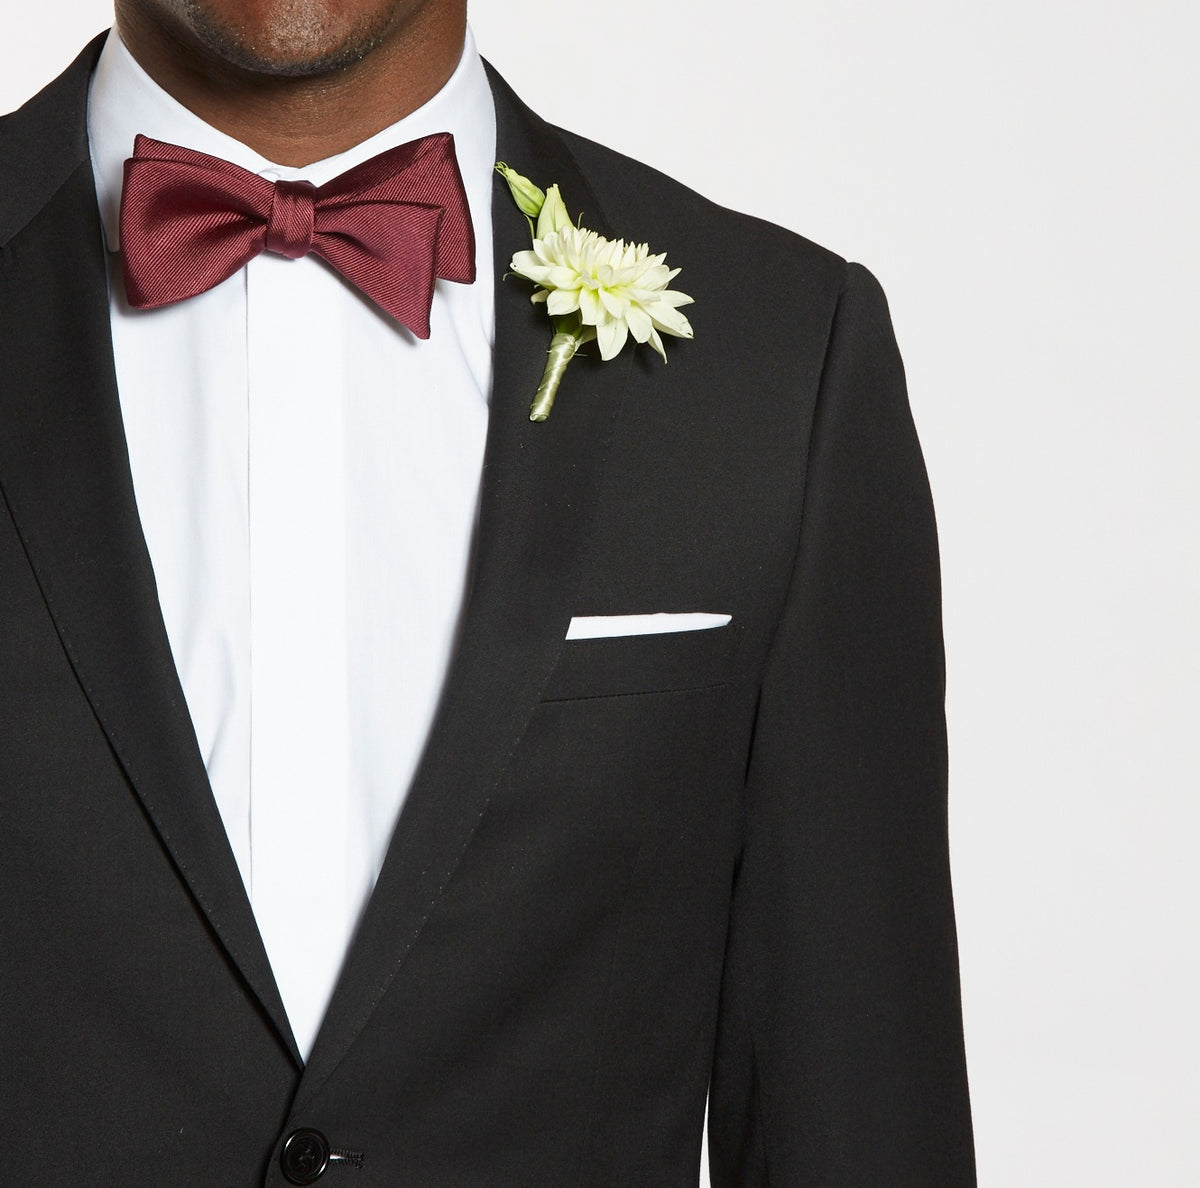 How to Pin a Boutonniere: Perfect Placement in 3 Easy Steps